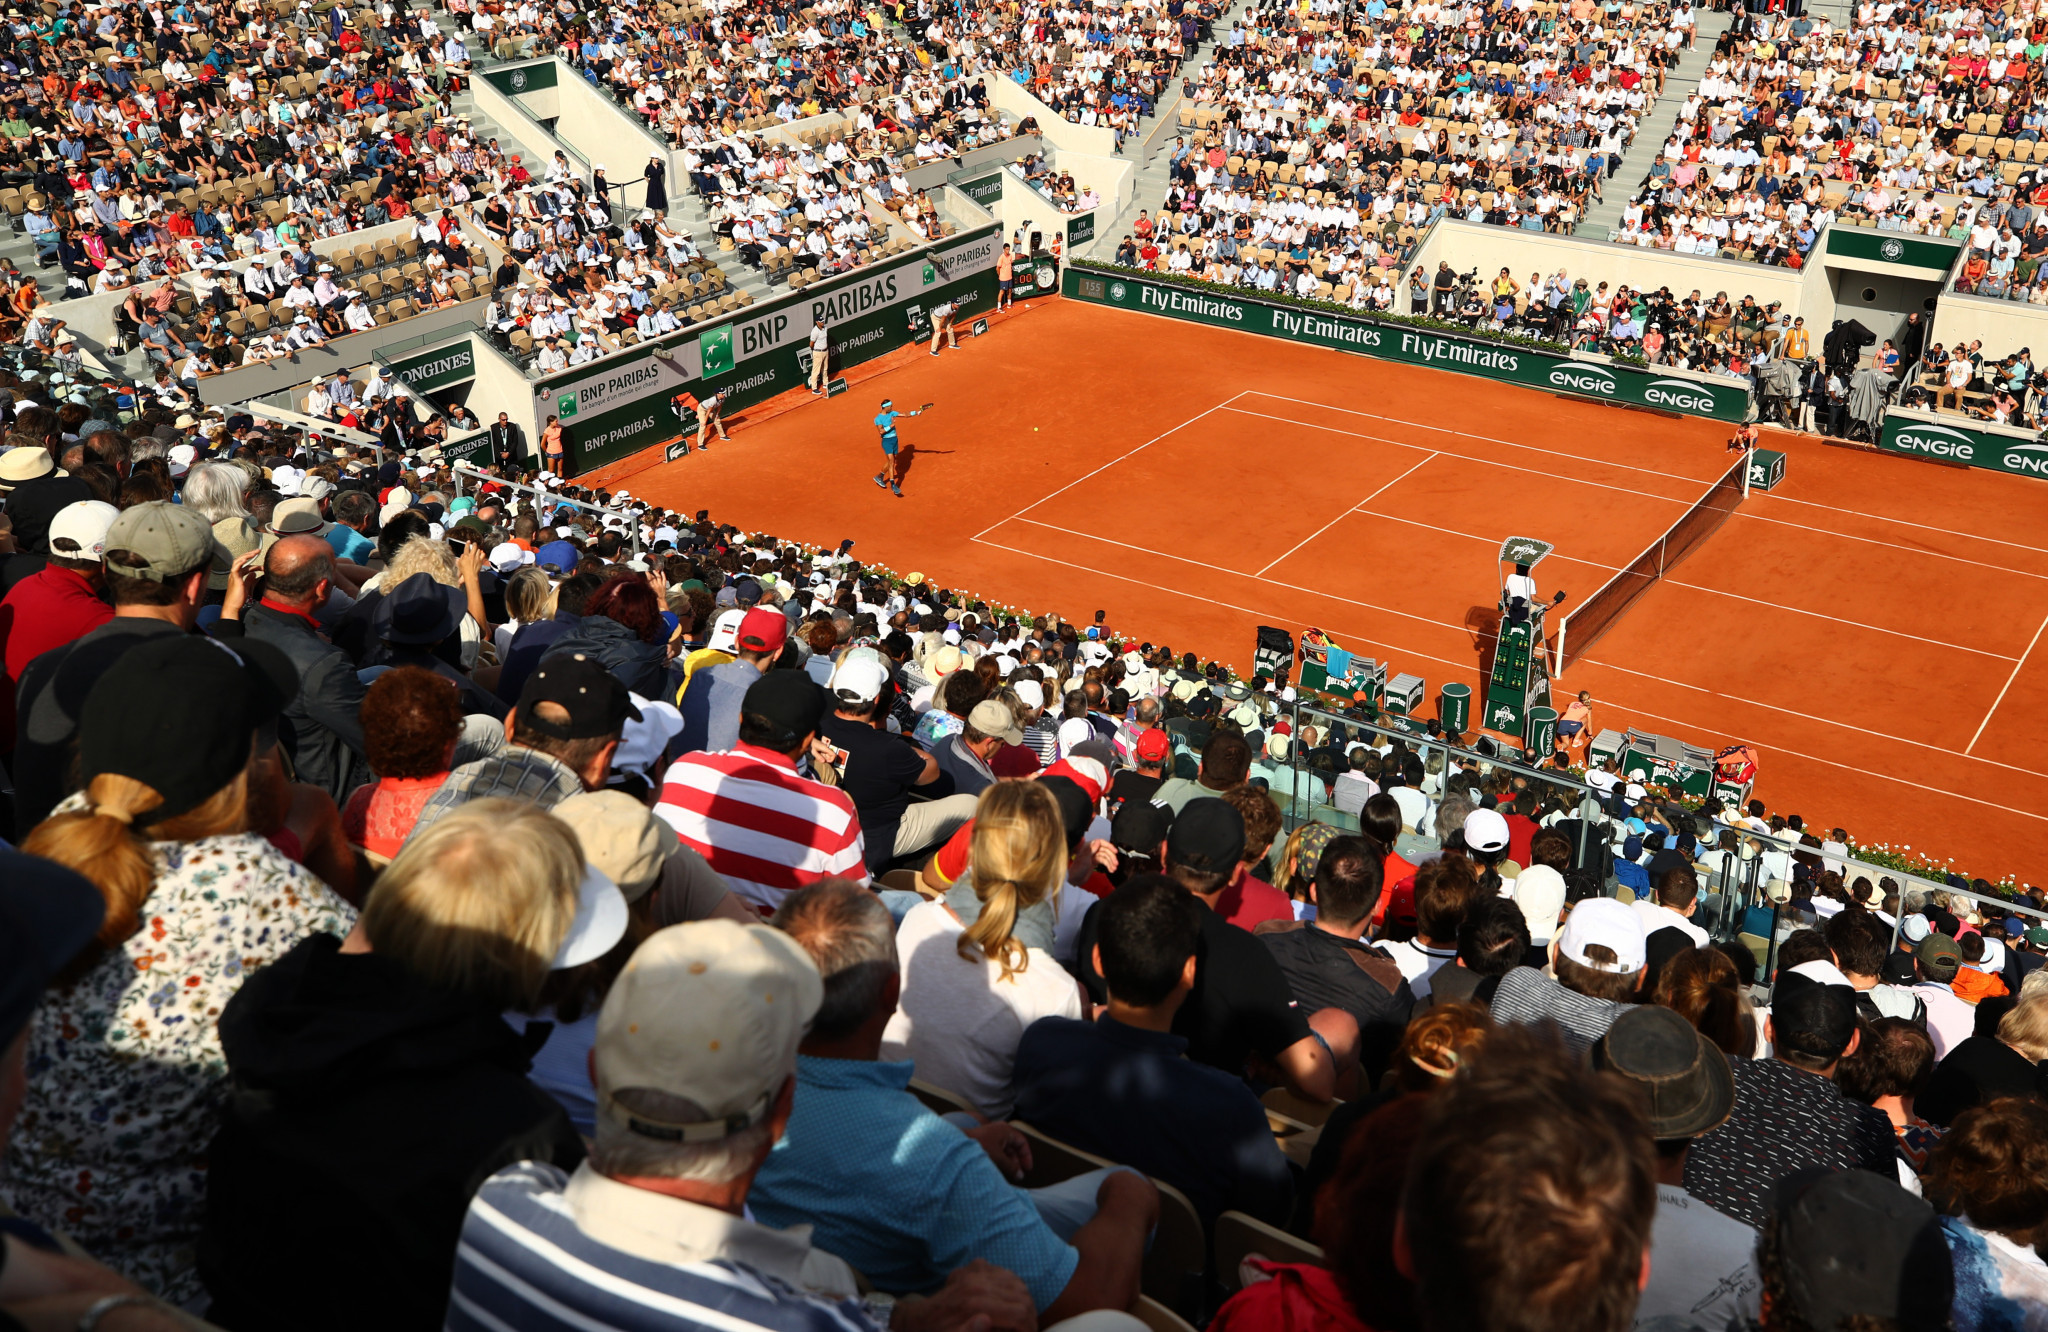 Top seeds Nadal and Halep reach third round at French Open